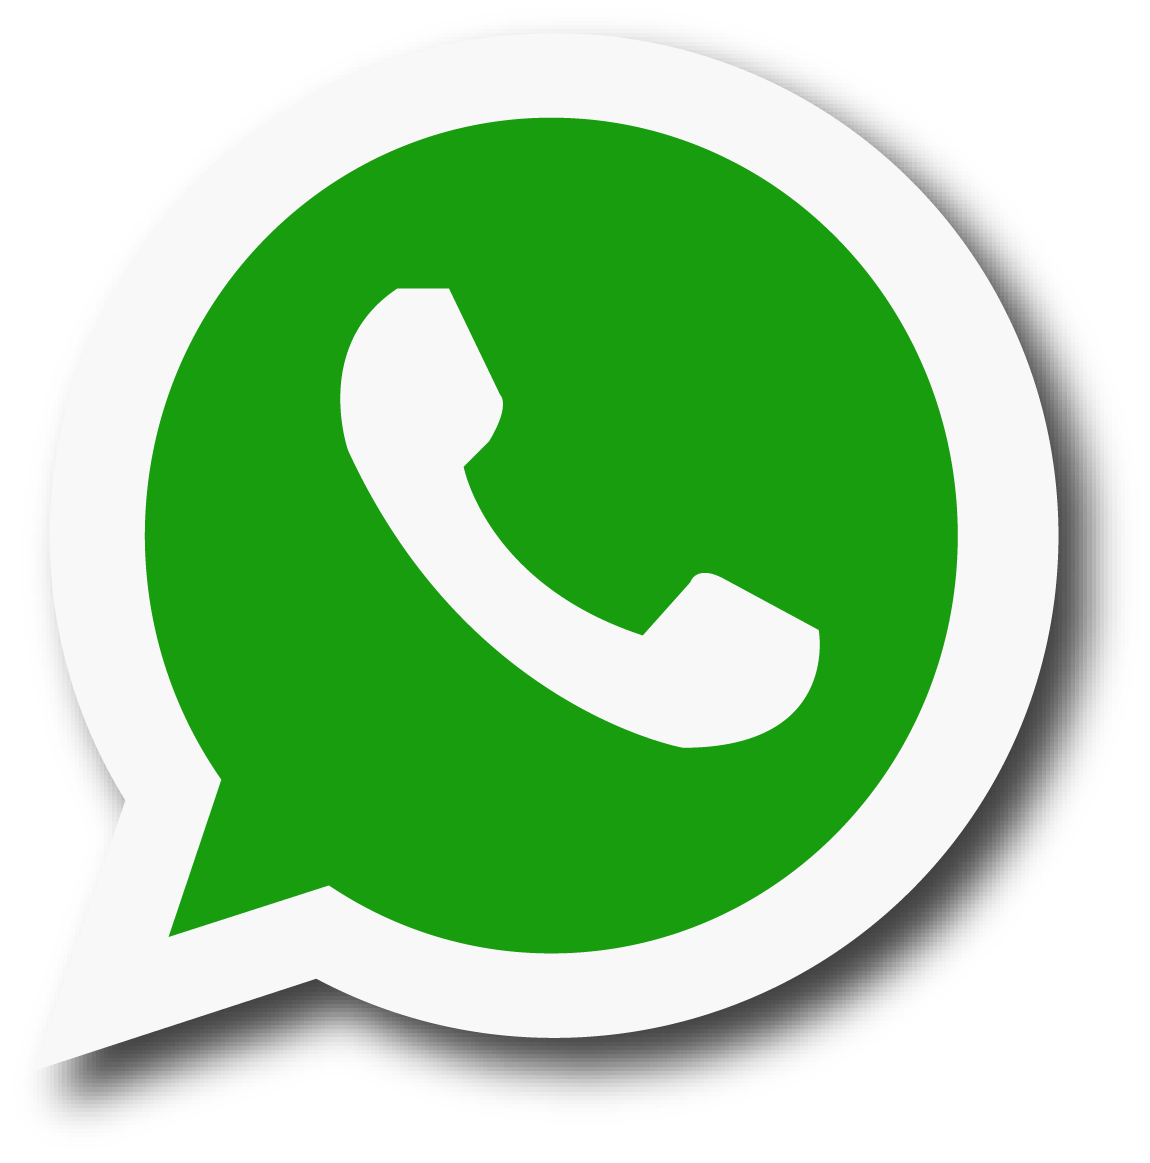 Whatsapp Logo Vector Wallpaper